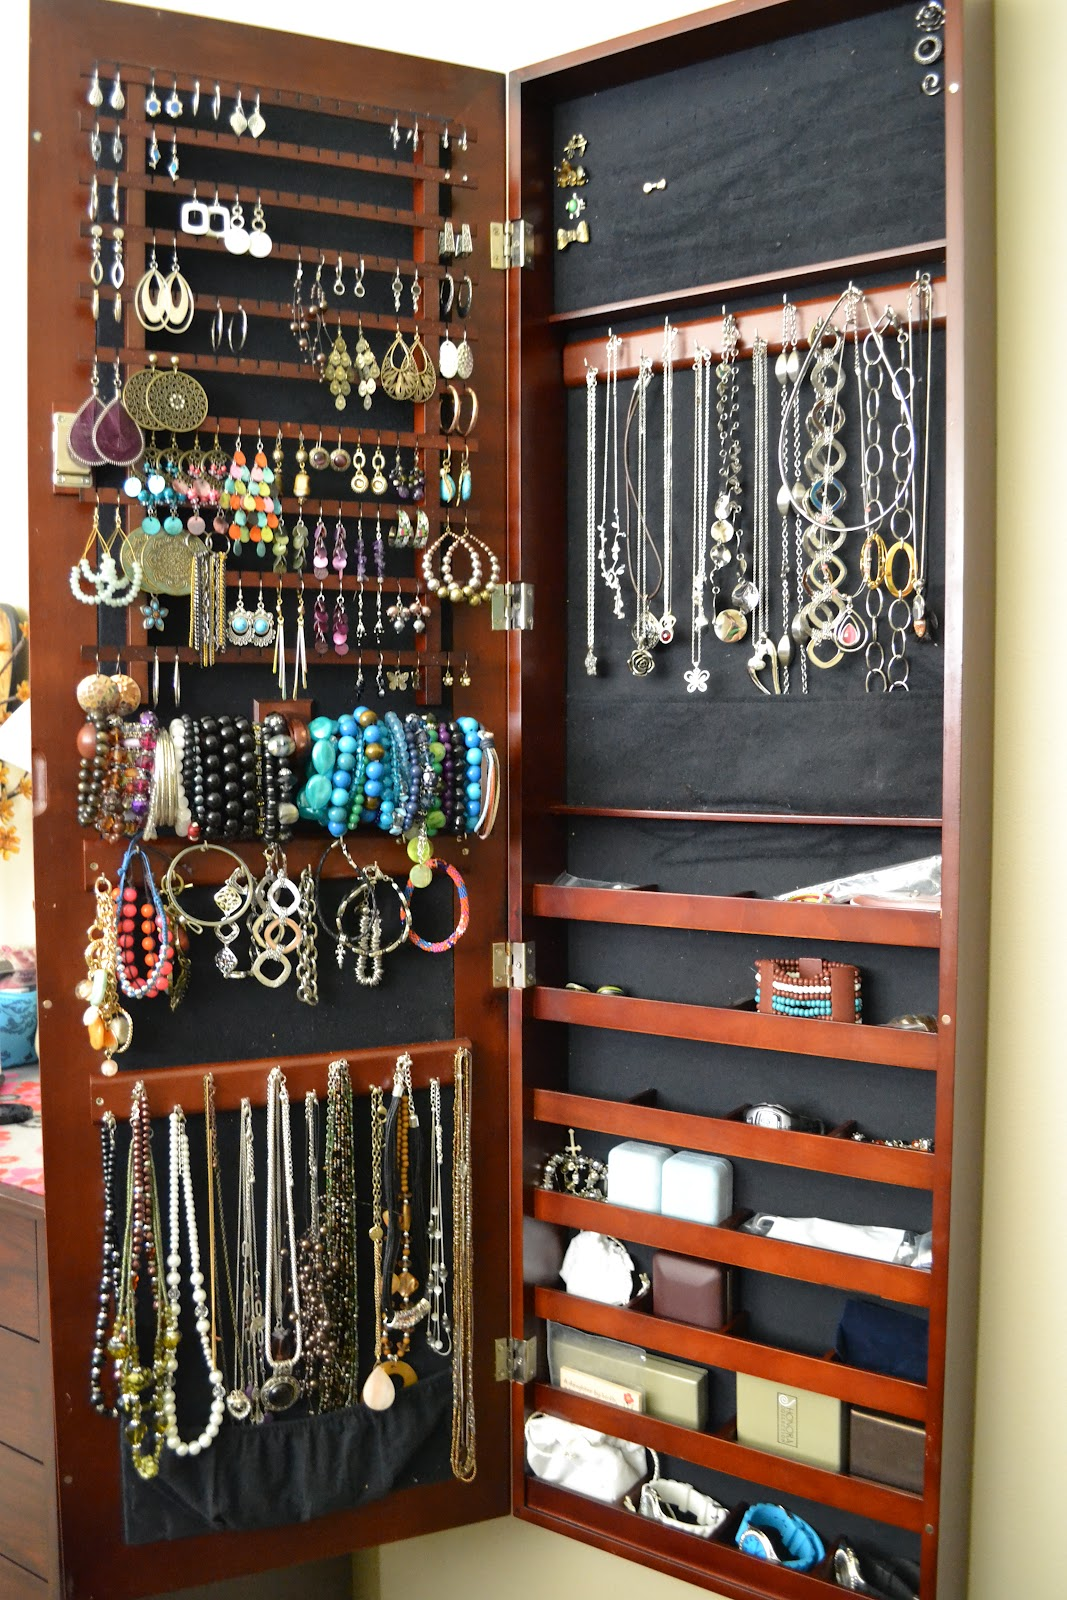 Jewelry storage organization this girl 39 s life blog - Ideas for storing jewellery ...